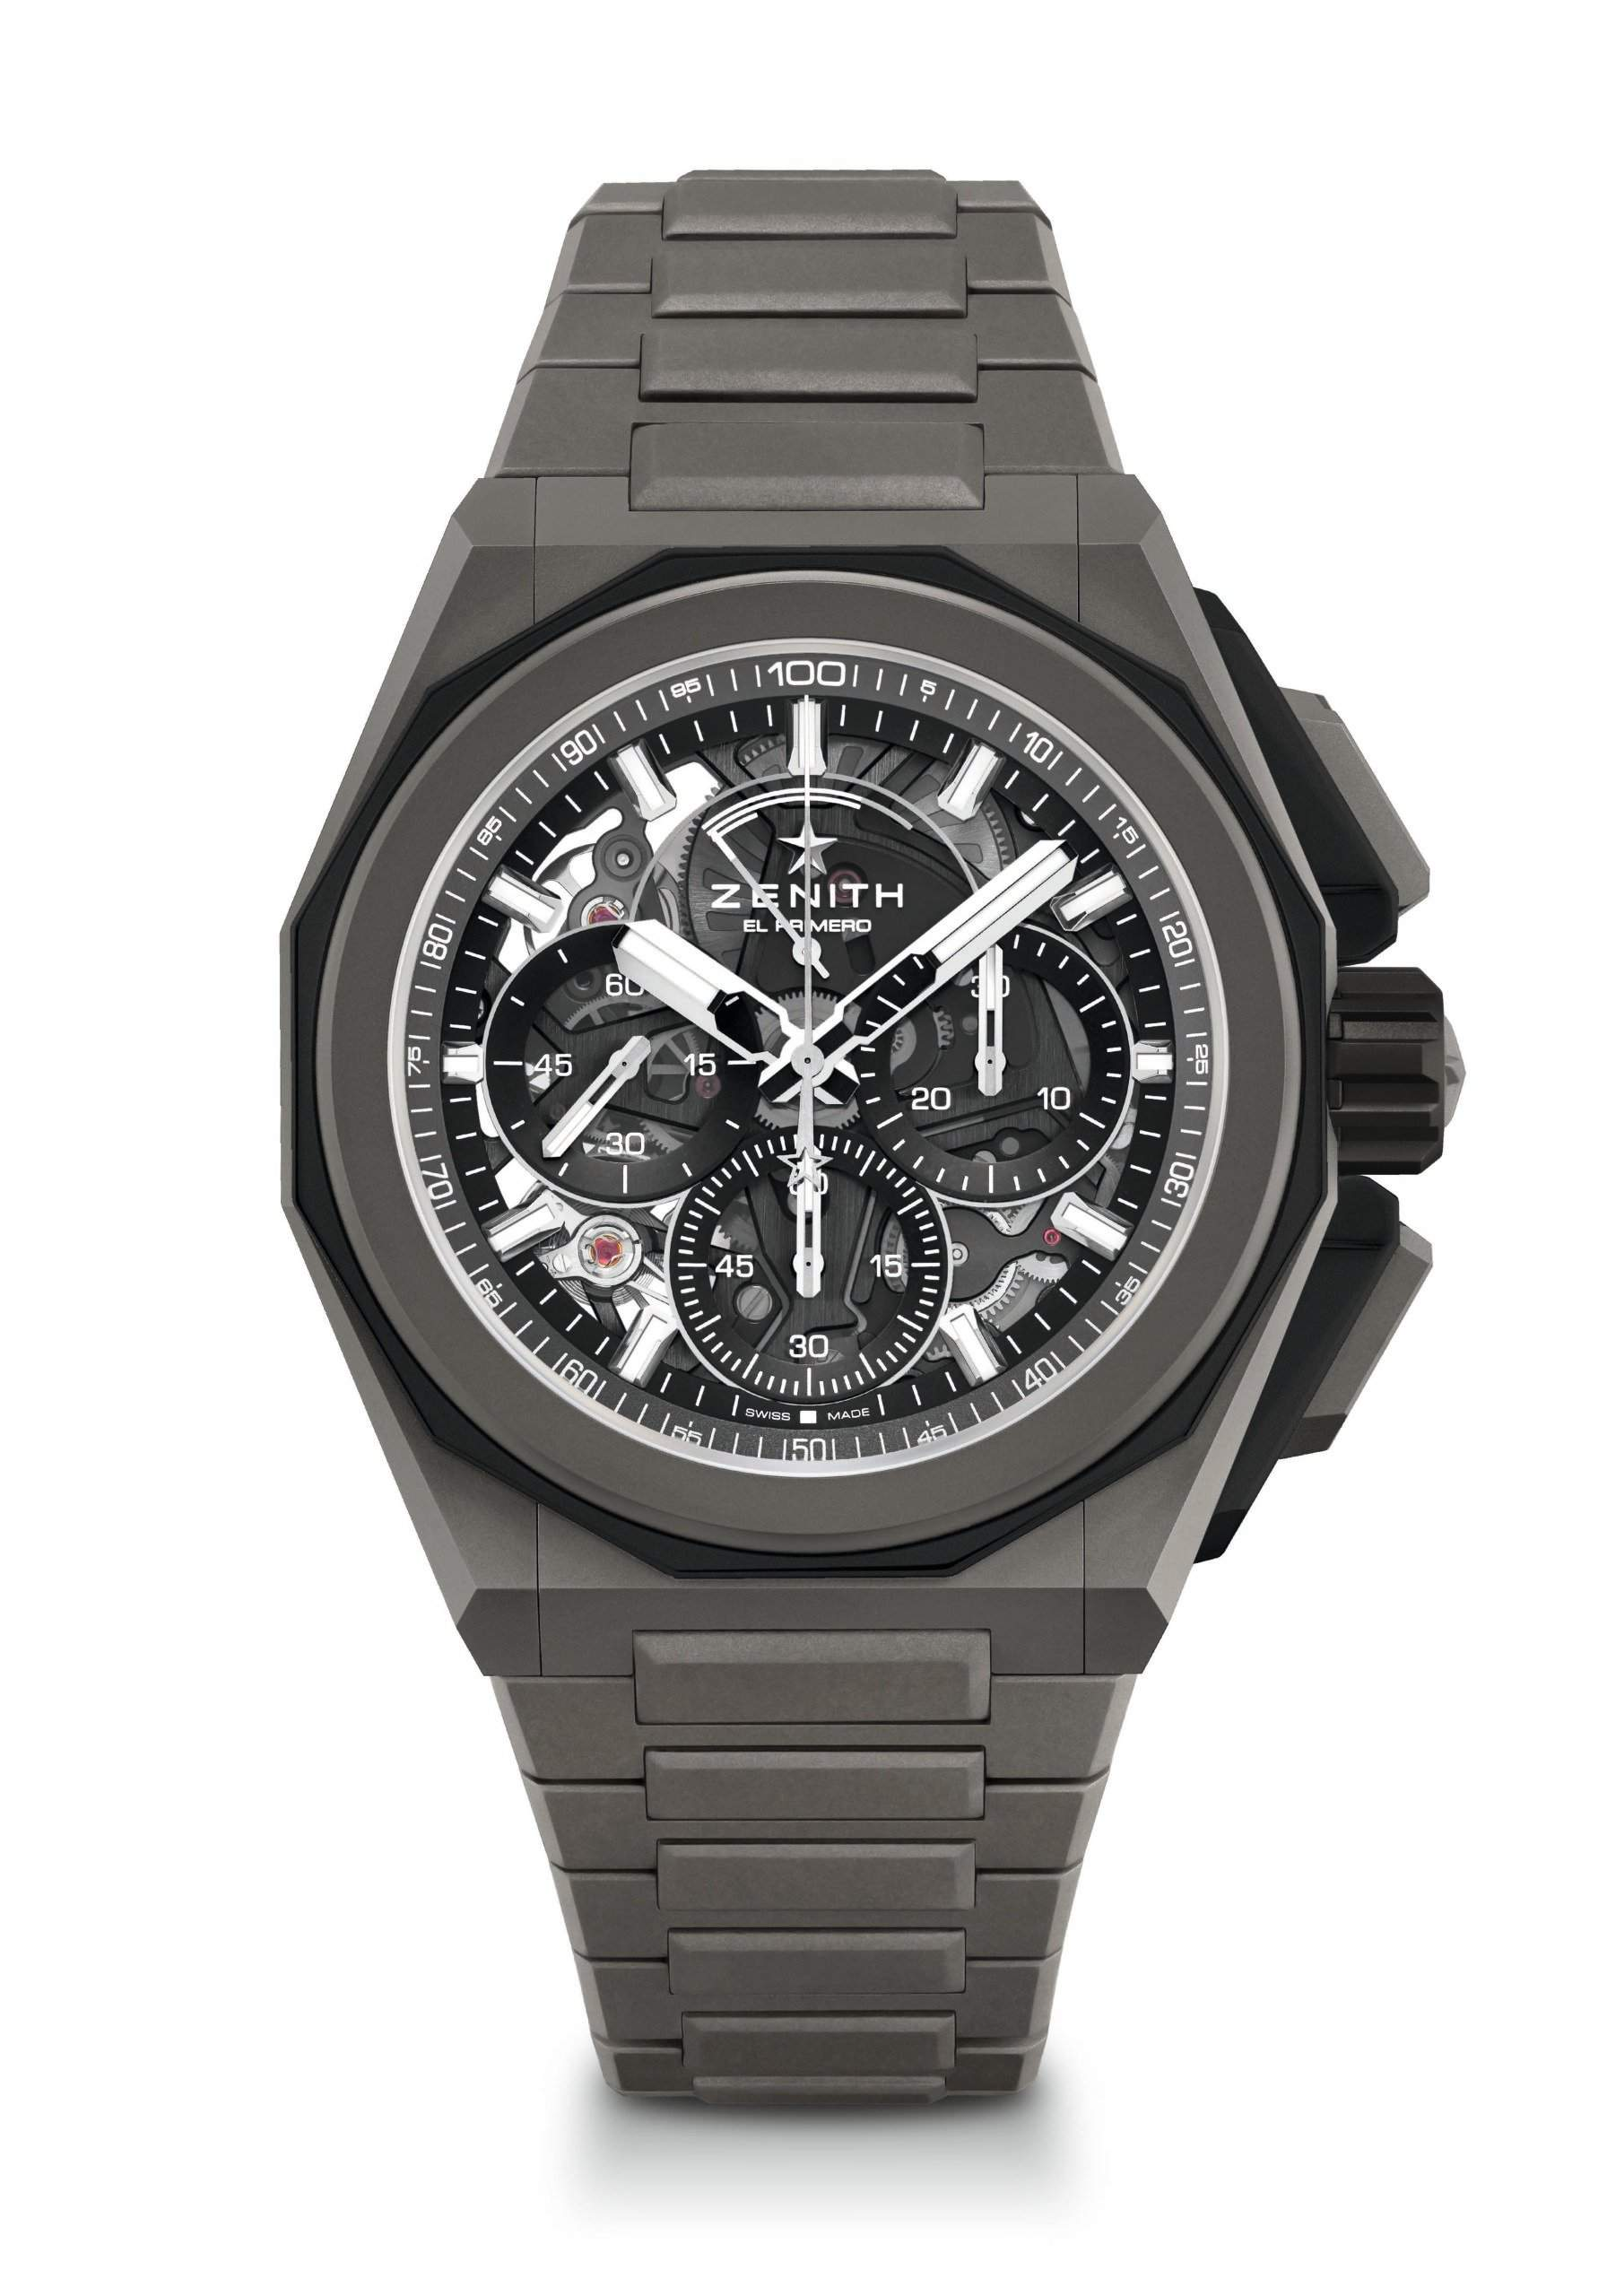 The Zentih Defy Extreme chronograph runs 60 times faster than most chronographs.